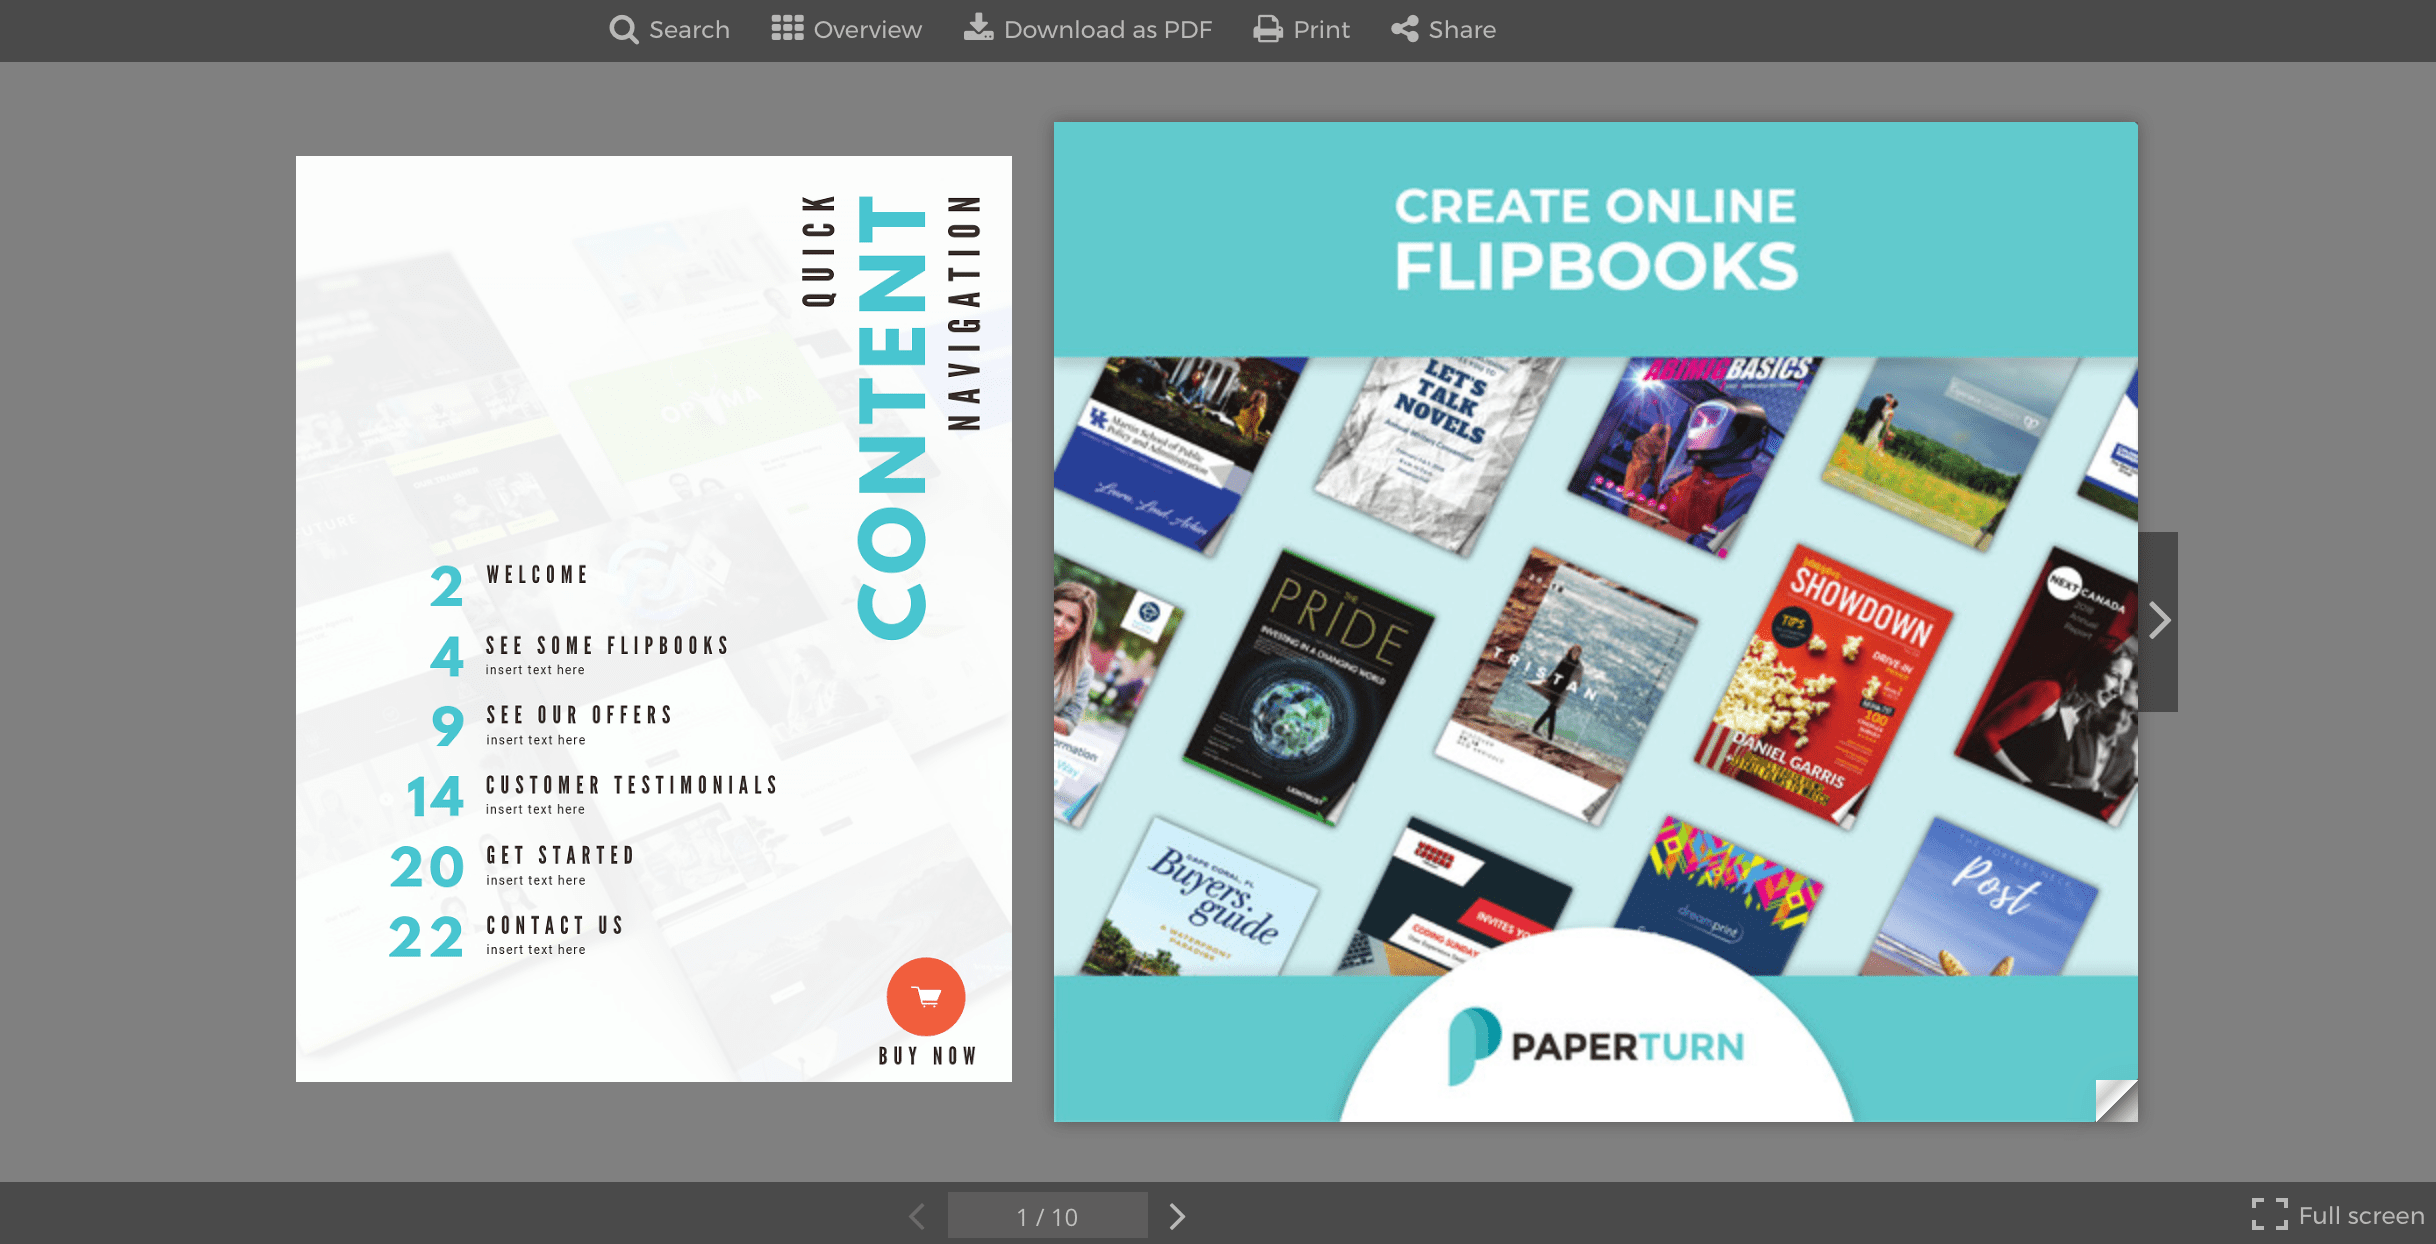 Table of contents displayed on the left hand side of a flipbook's front page